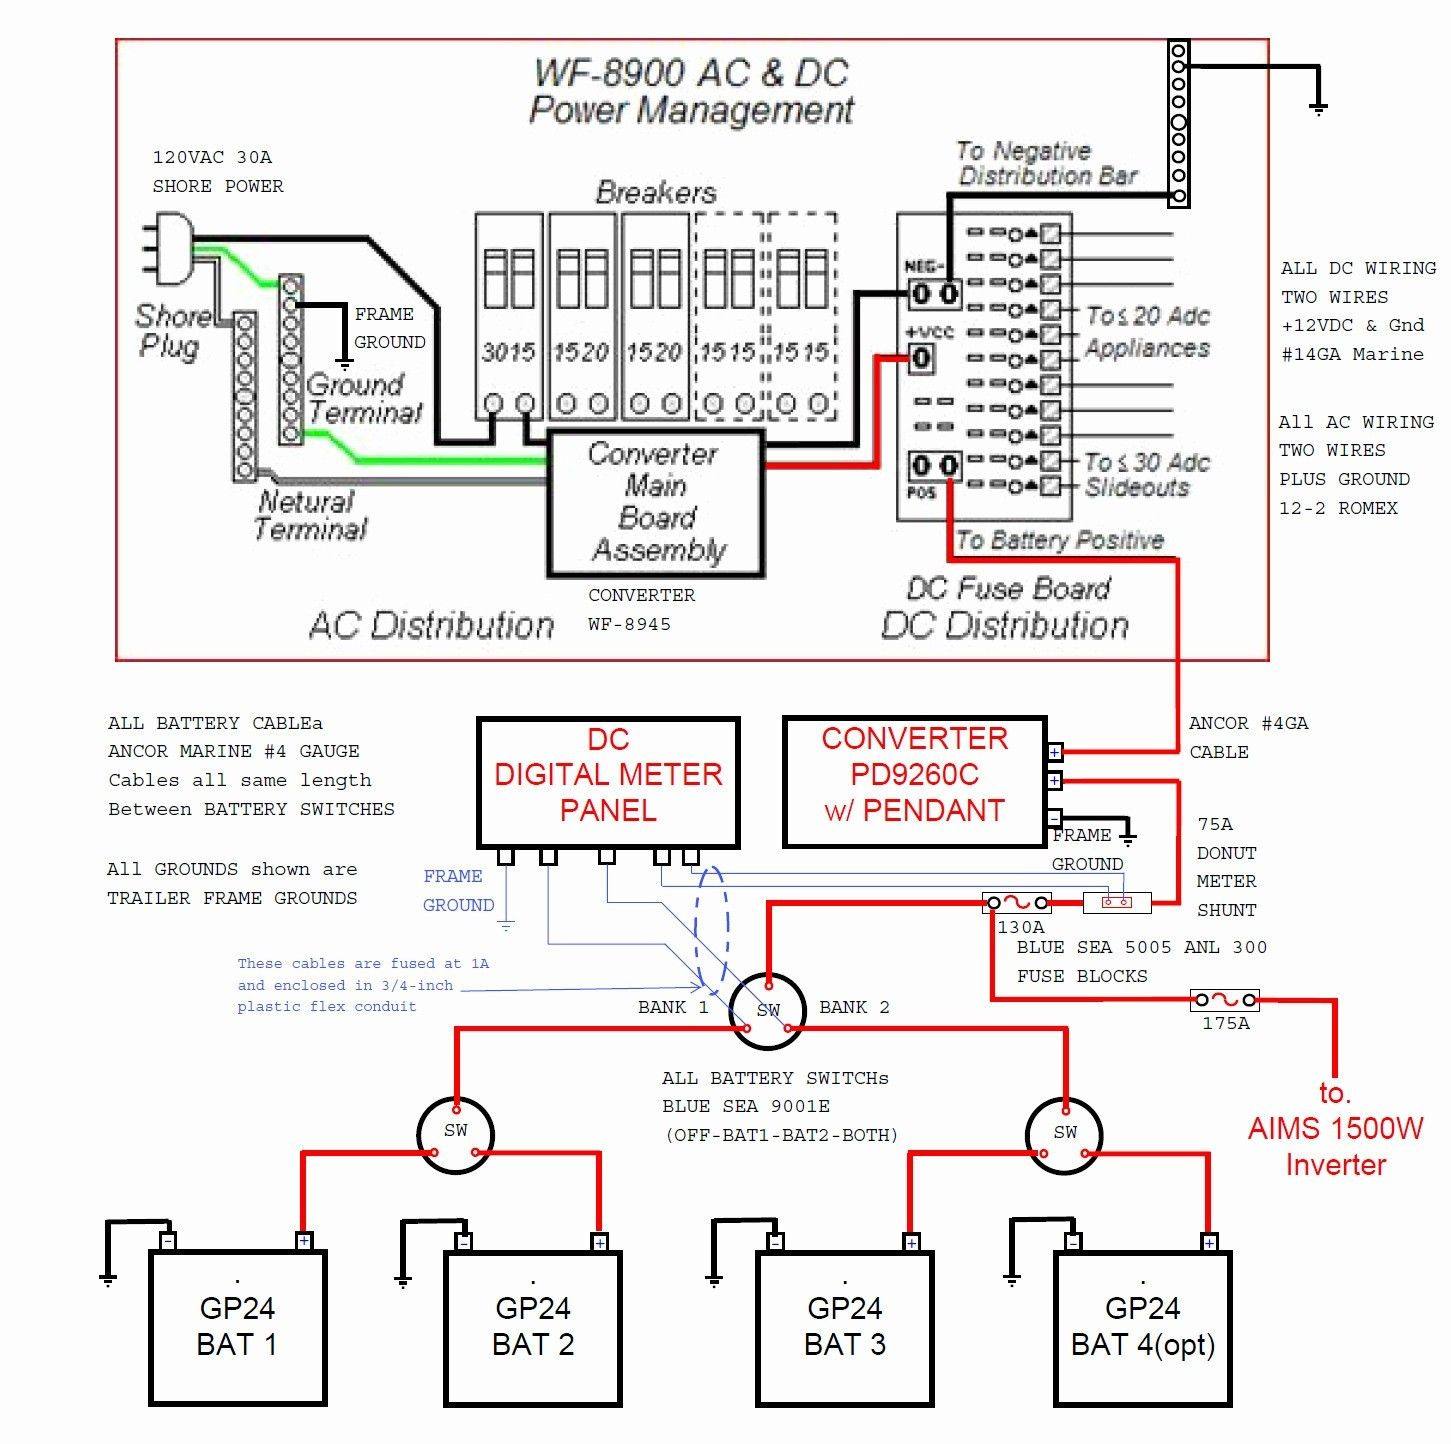 🏆 [DIAGRAM in Pictures Database] Electrical Schematic Wiring Diagram 220  Volt 30 Twist Just Download or Read 30 Twist - EXISTENTIAL-GRAPH.ONYXUM.COMComplete Diagram Picture Database - Onyxum.com